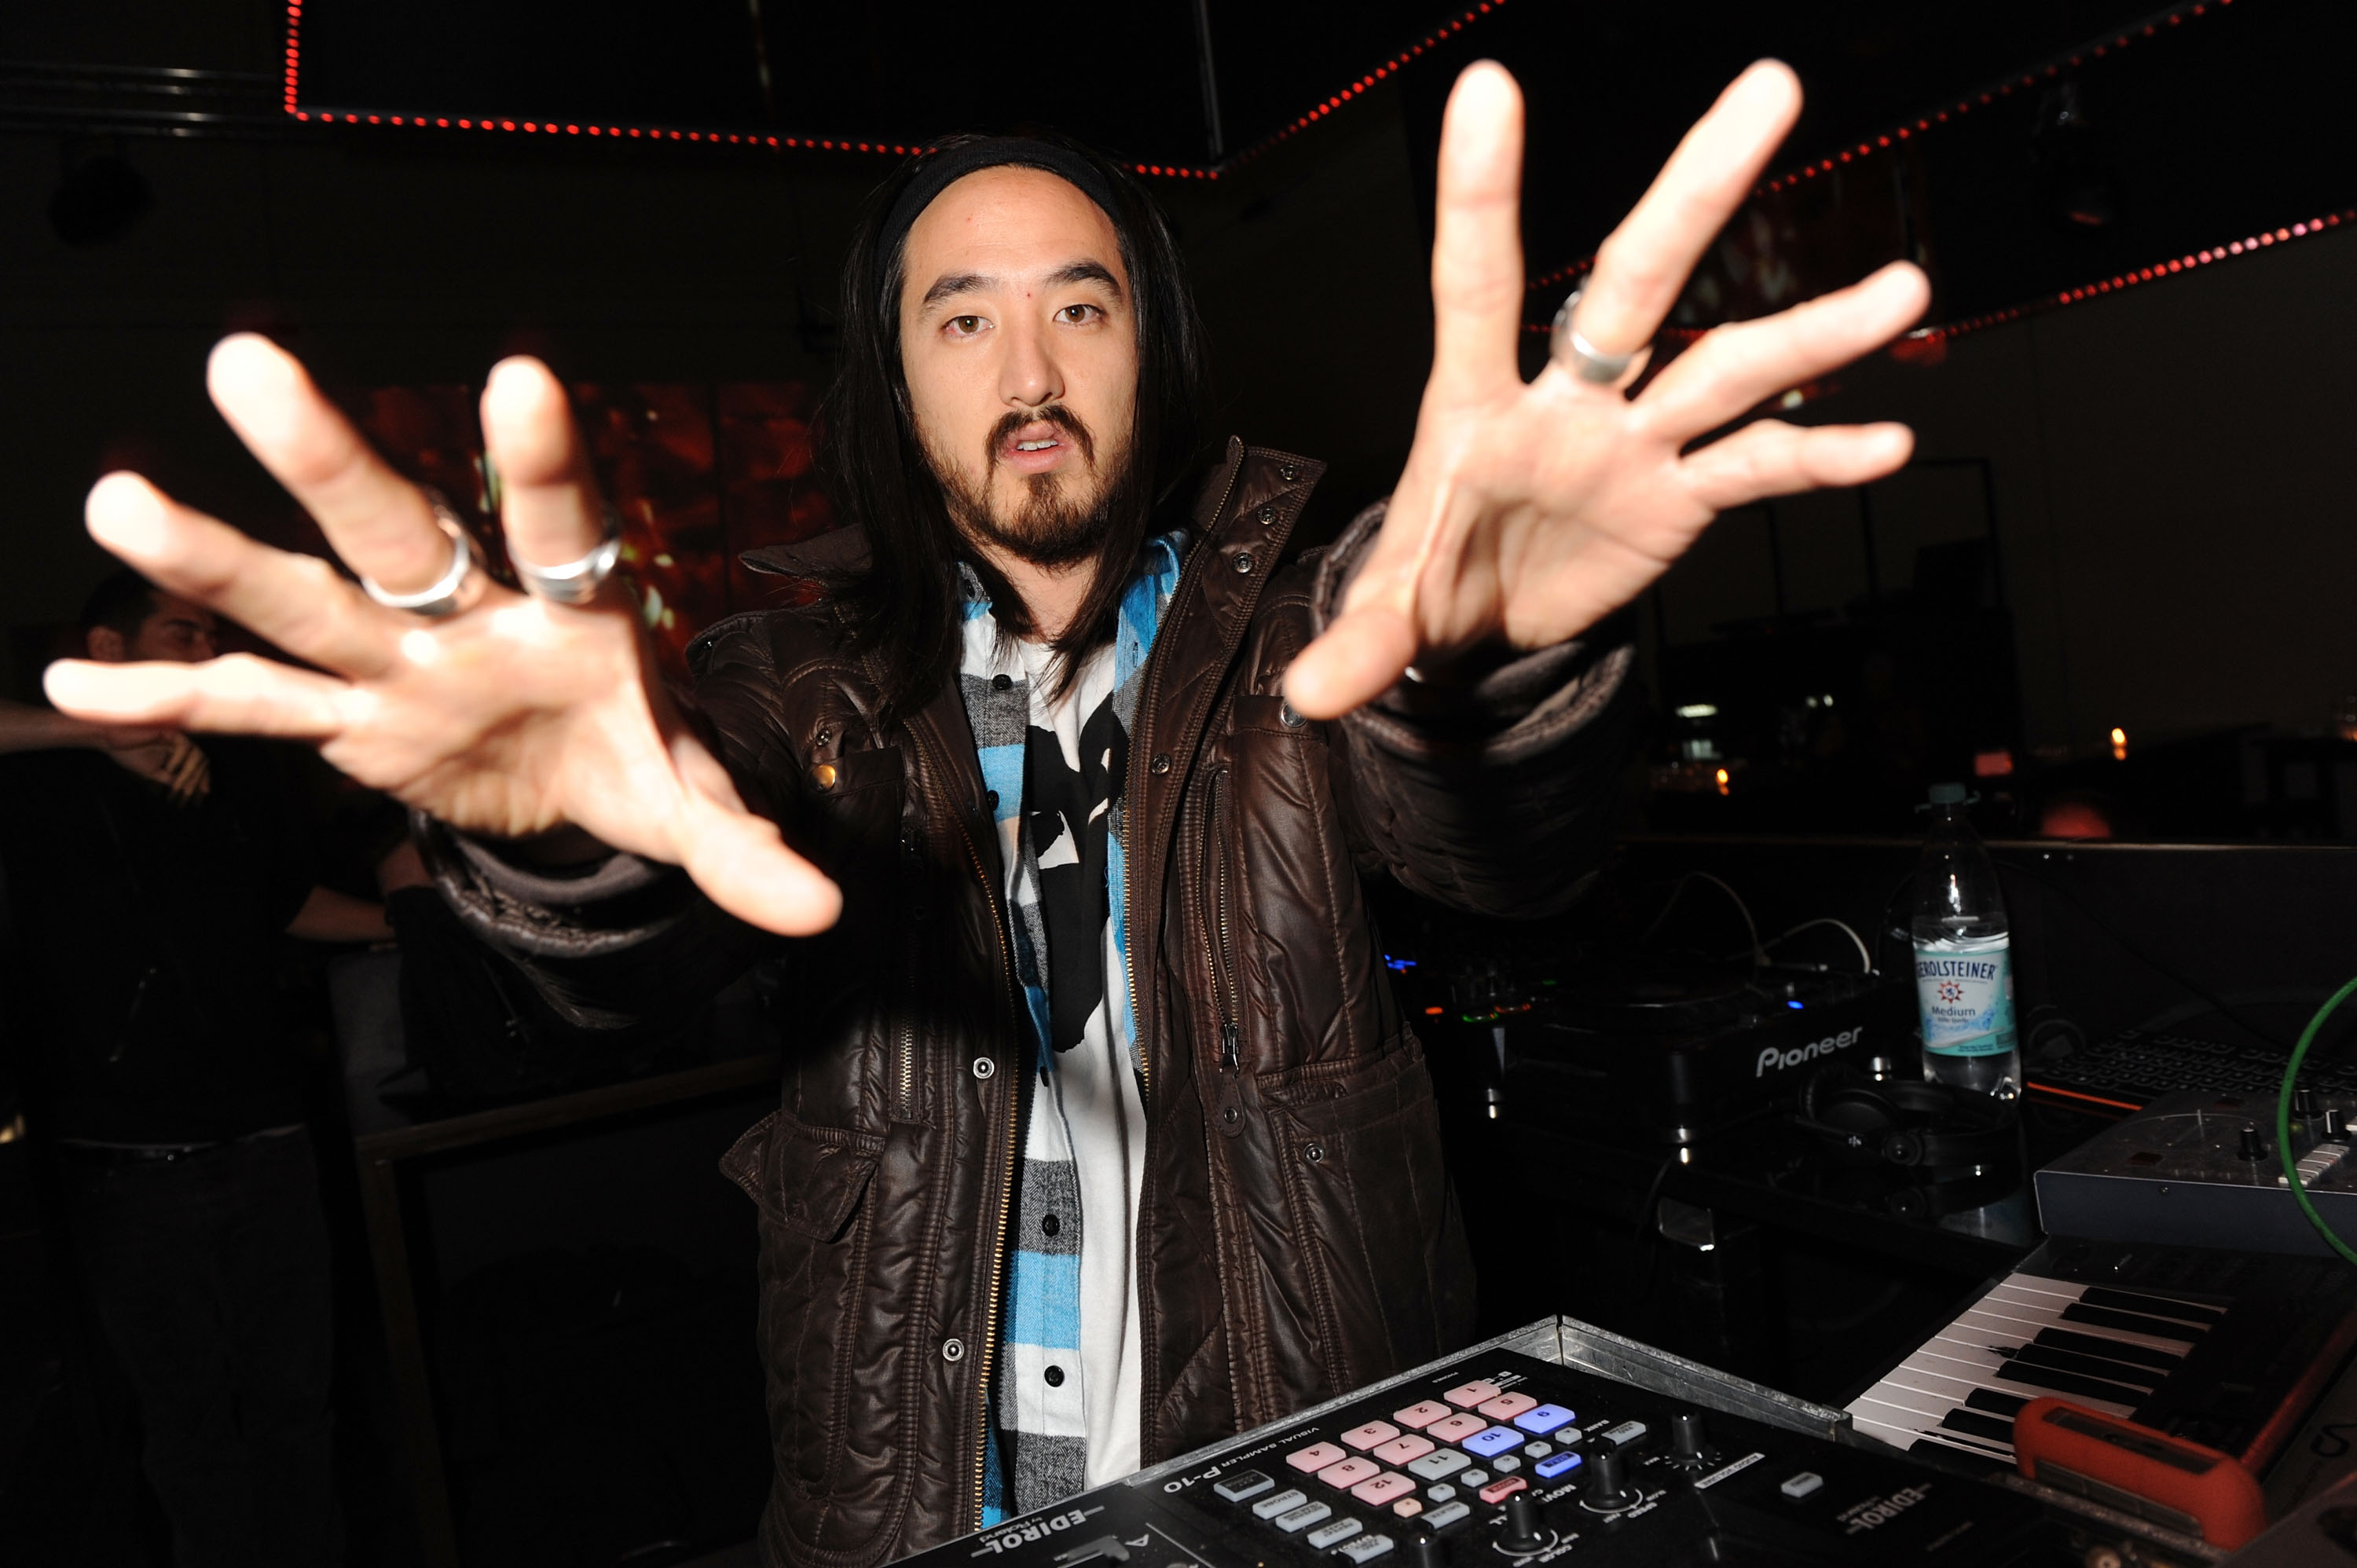 MUNICH, GERMANY - NOVEMBER 12: DJ Steve Aoki attends the 'Grand Opening' Party at the P1 on November 12, 2009 in Munich, Germ